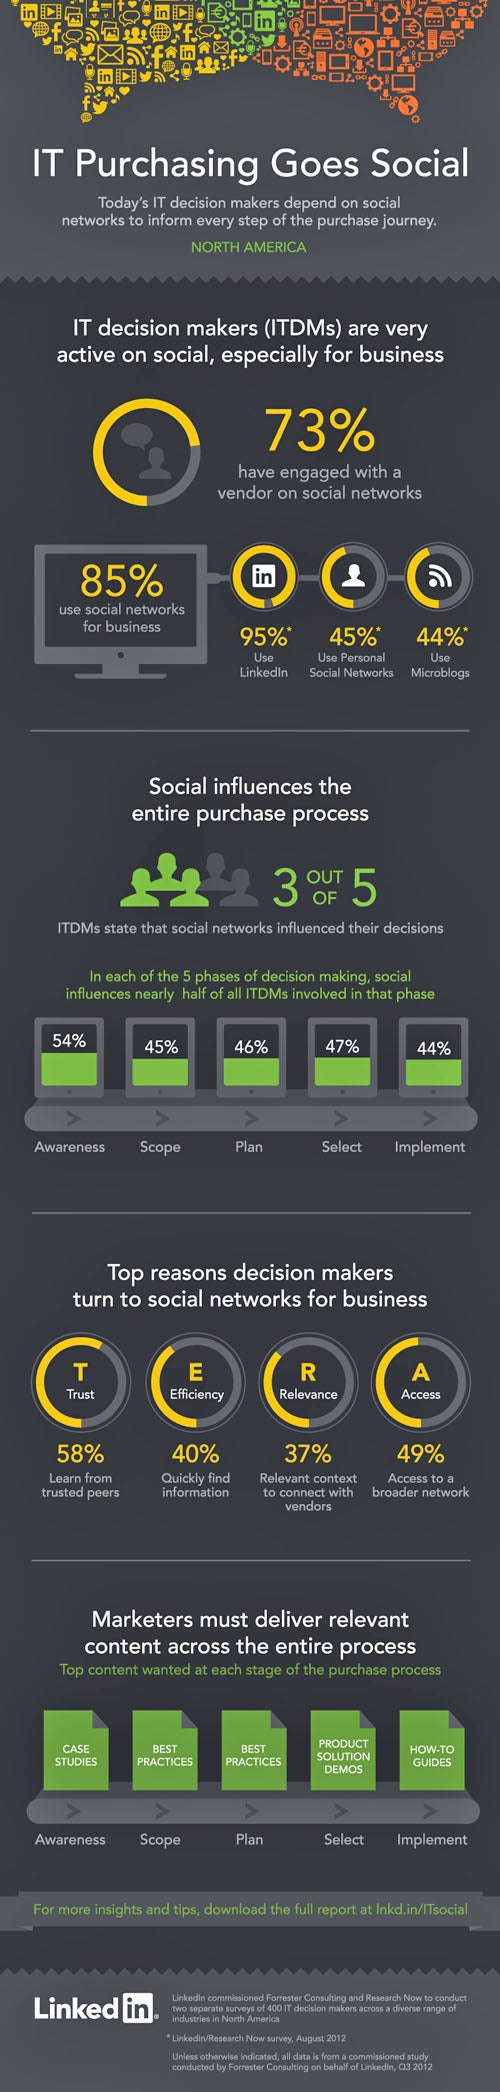 Social Networks Drive IT Purchasing Process